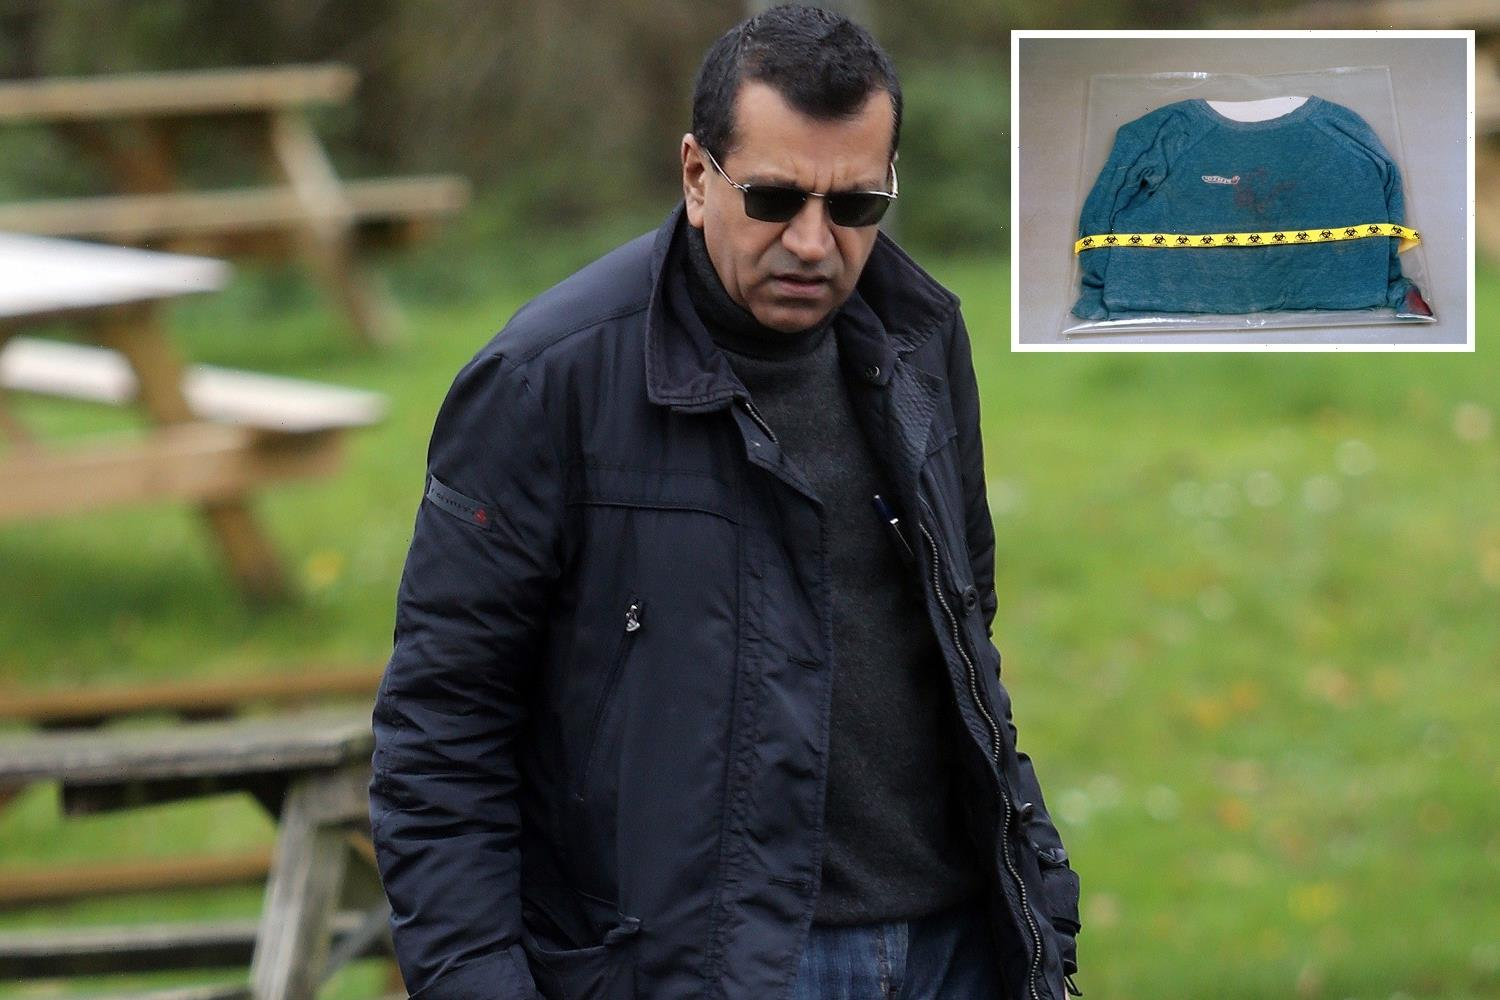 Martin Bashir lost bloodied clothes of murdered schoolgirl, 9, and BBC 'failed to properly search for them'